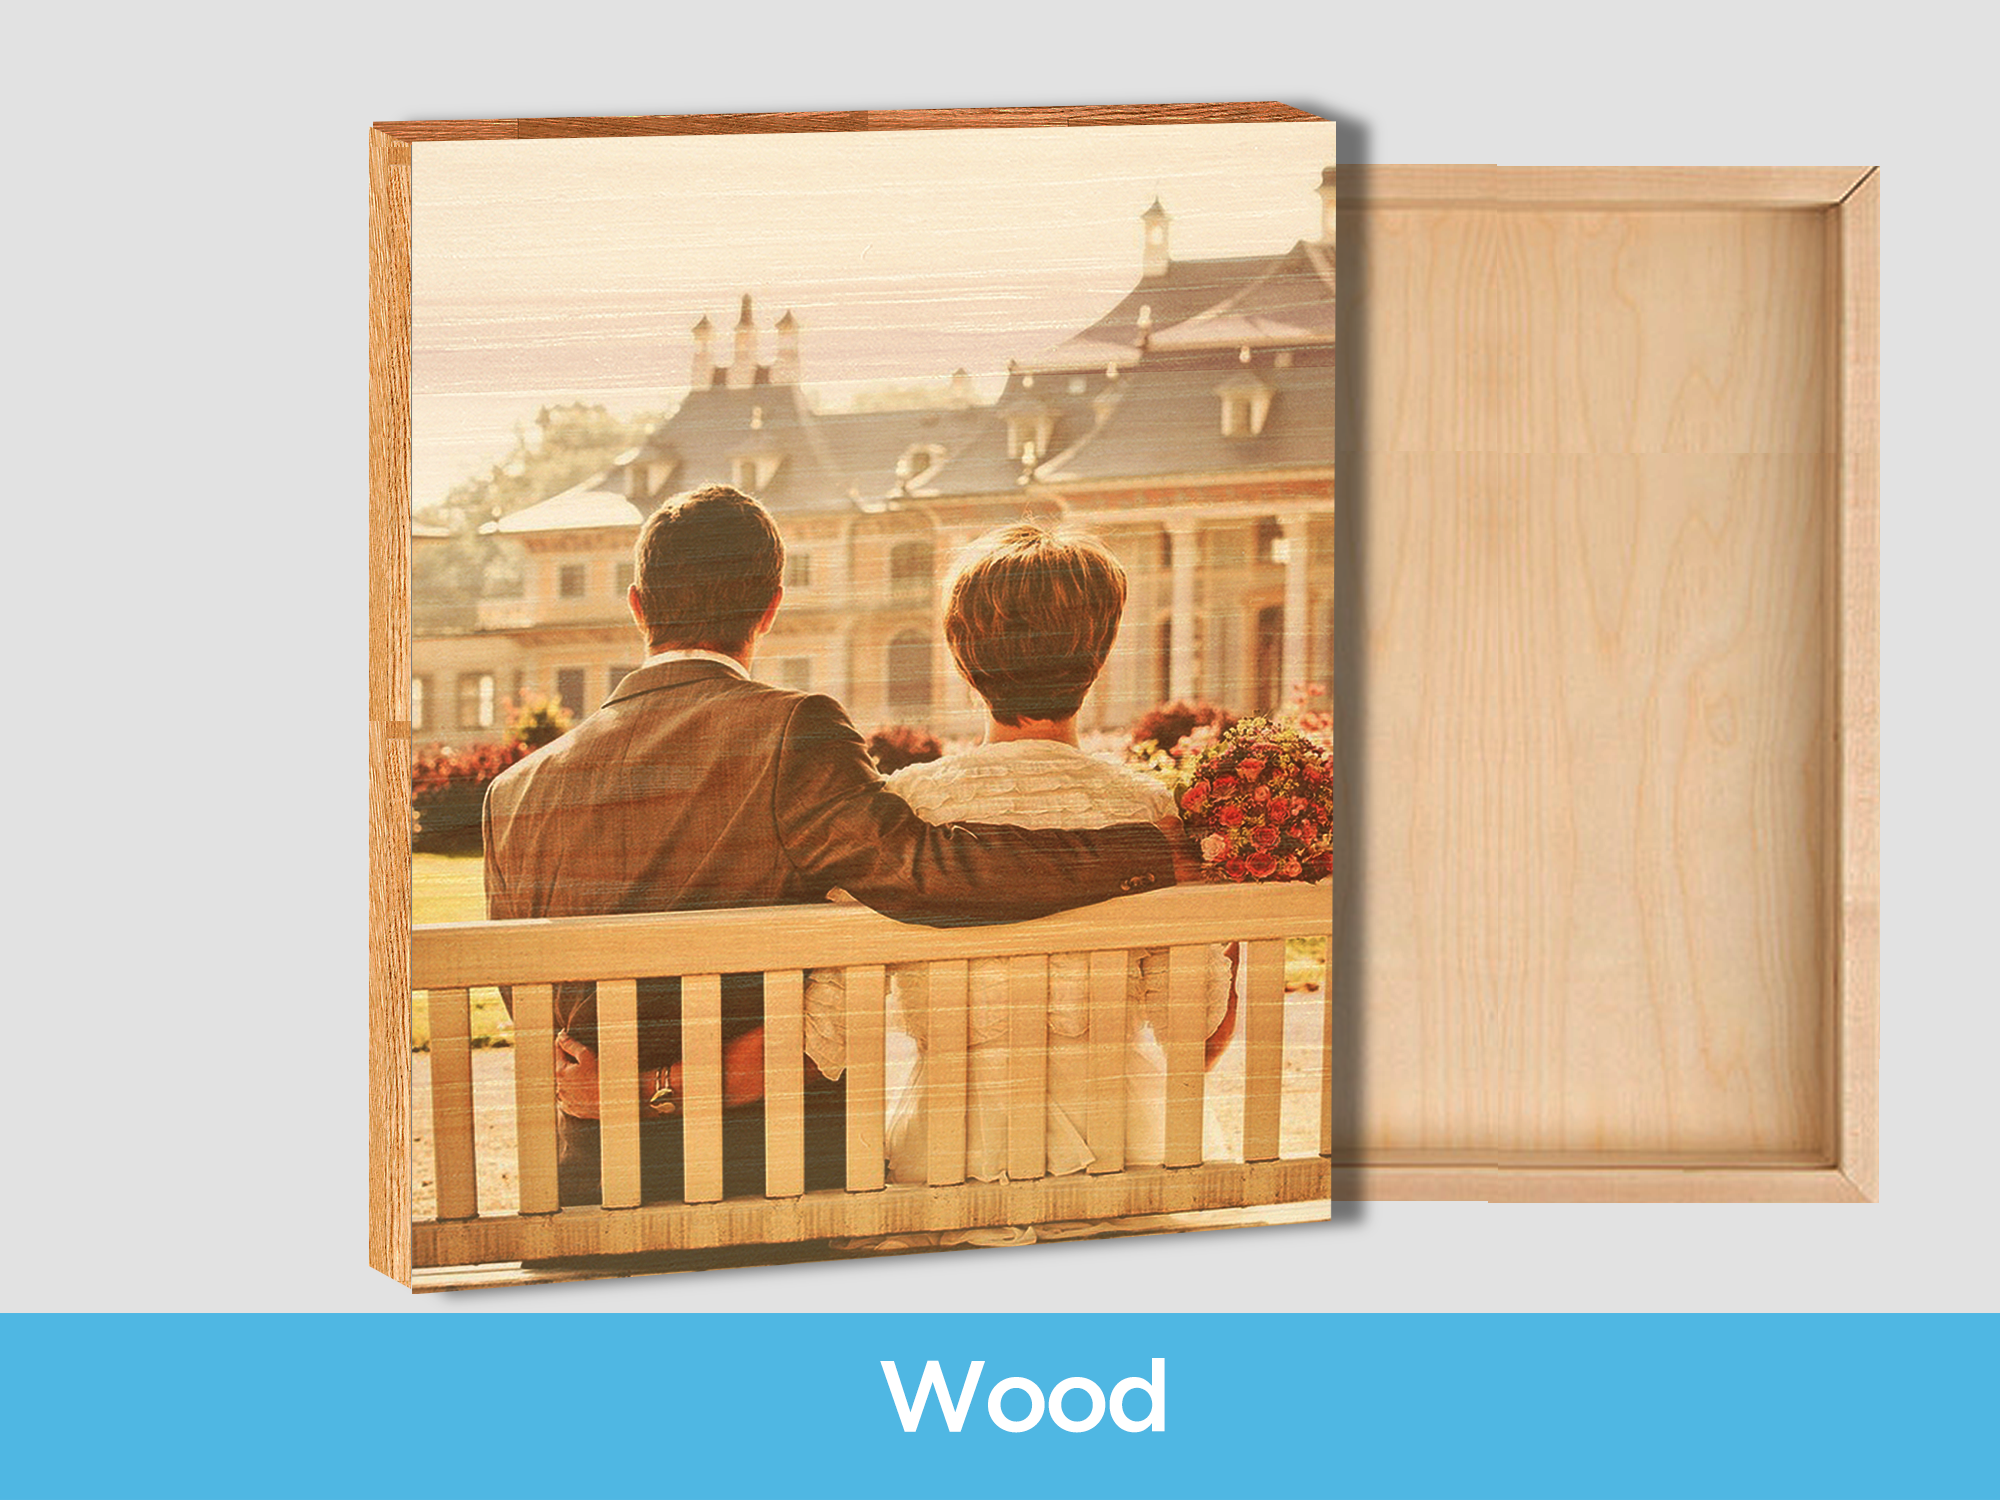 https://www.abcprintroom.com/images/products_gallery_images/pic_wood31.png